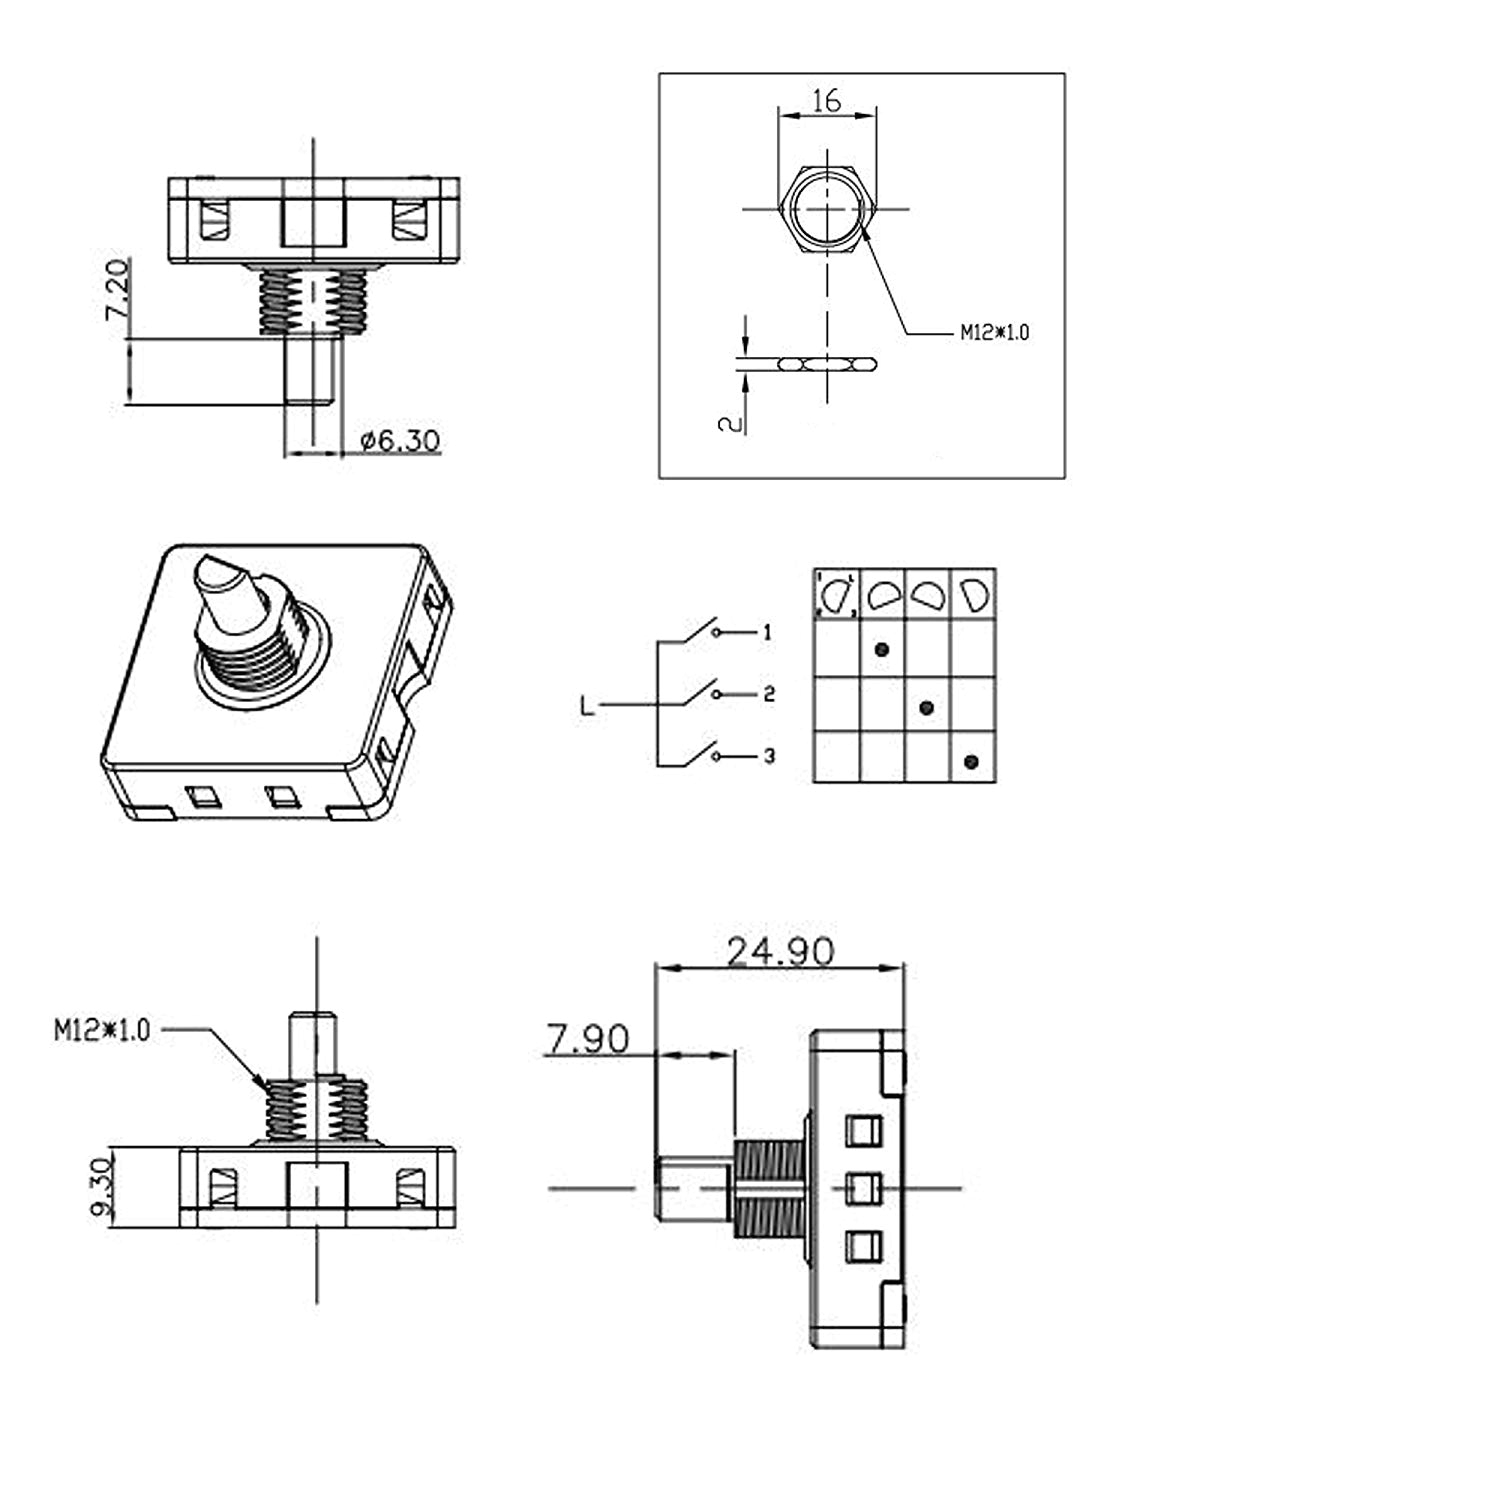 4 Position 3 Speed Fan Selector Rotary Switch Wiring Diagram Zw 6919 2 Position Selector Switch Wiring Diagram Download